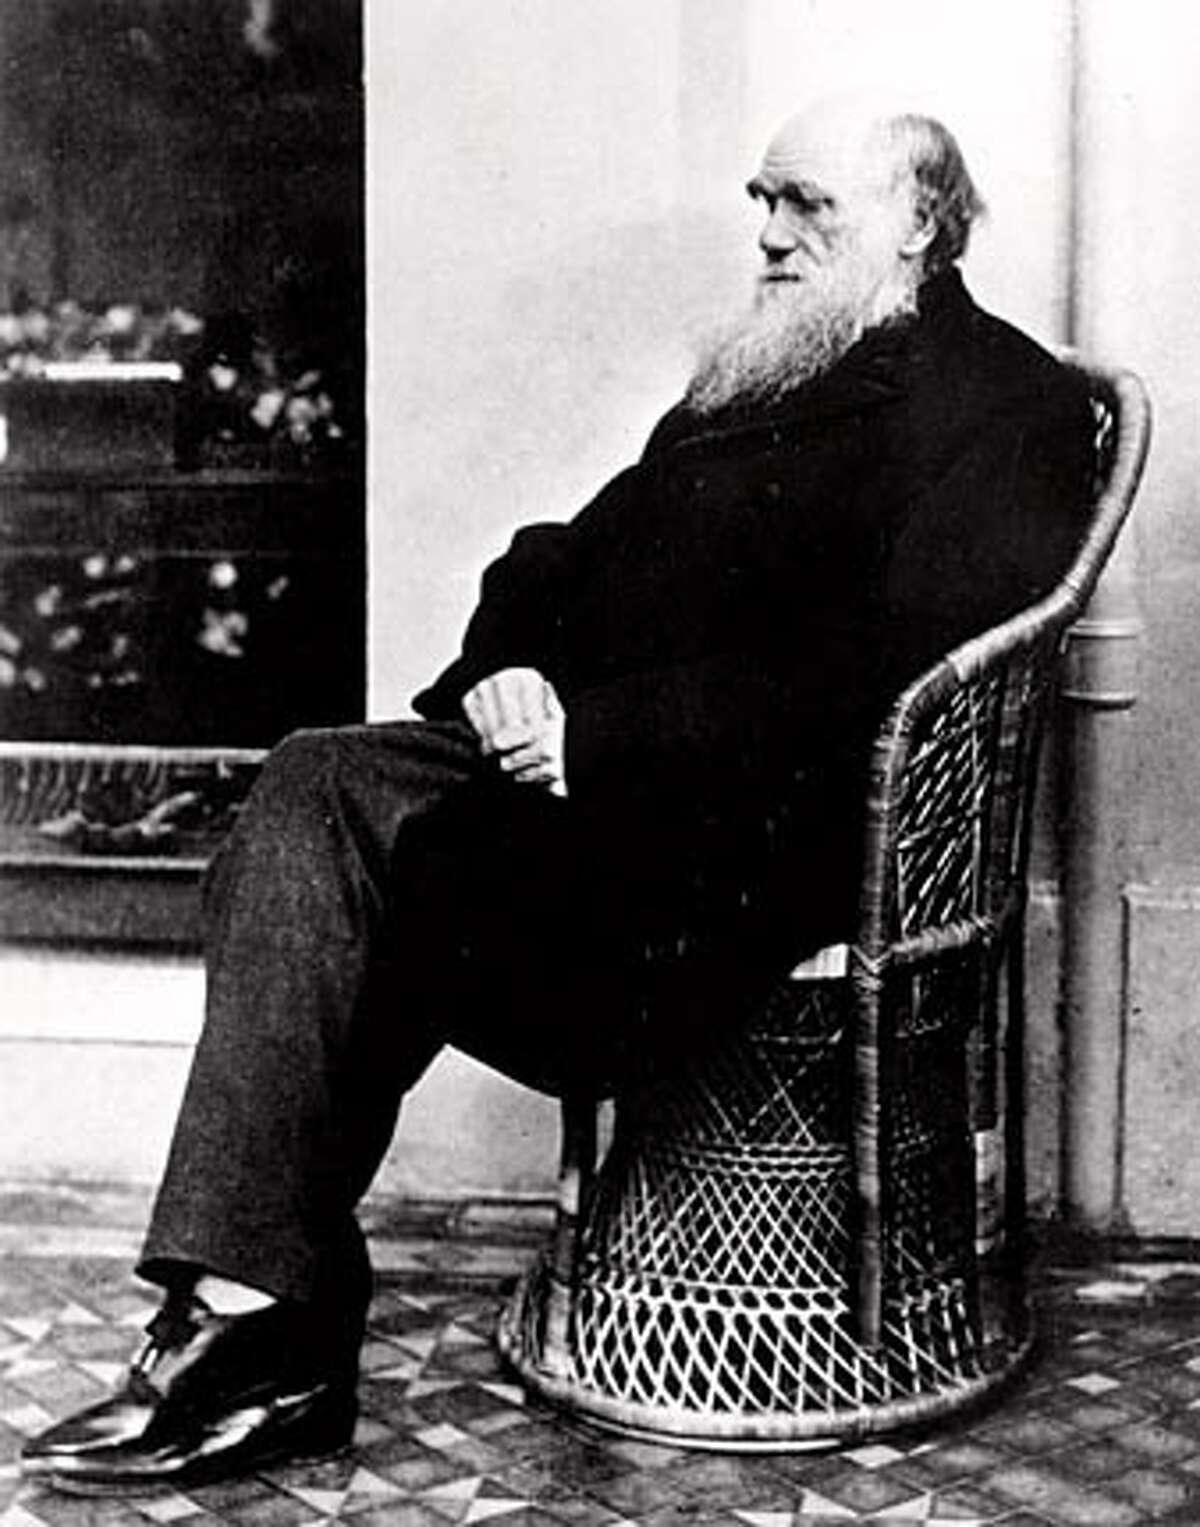 THIS IS A HANDOUT IMAGE. PLEASE VERIFY RIGHTS. STACK07-B-05FEB02-DD-HO Charles Darwin poses in a wicker chair in 1875 at an unknown location. (AP Photo) CAT